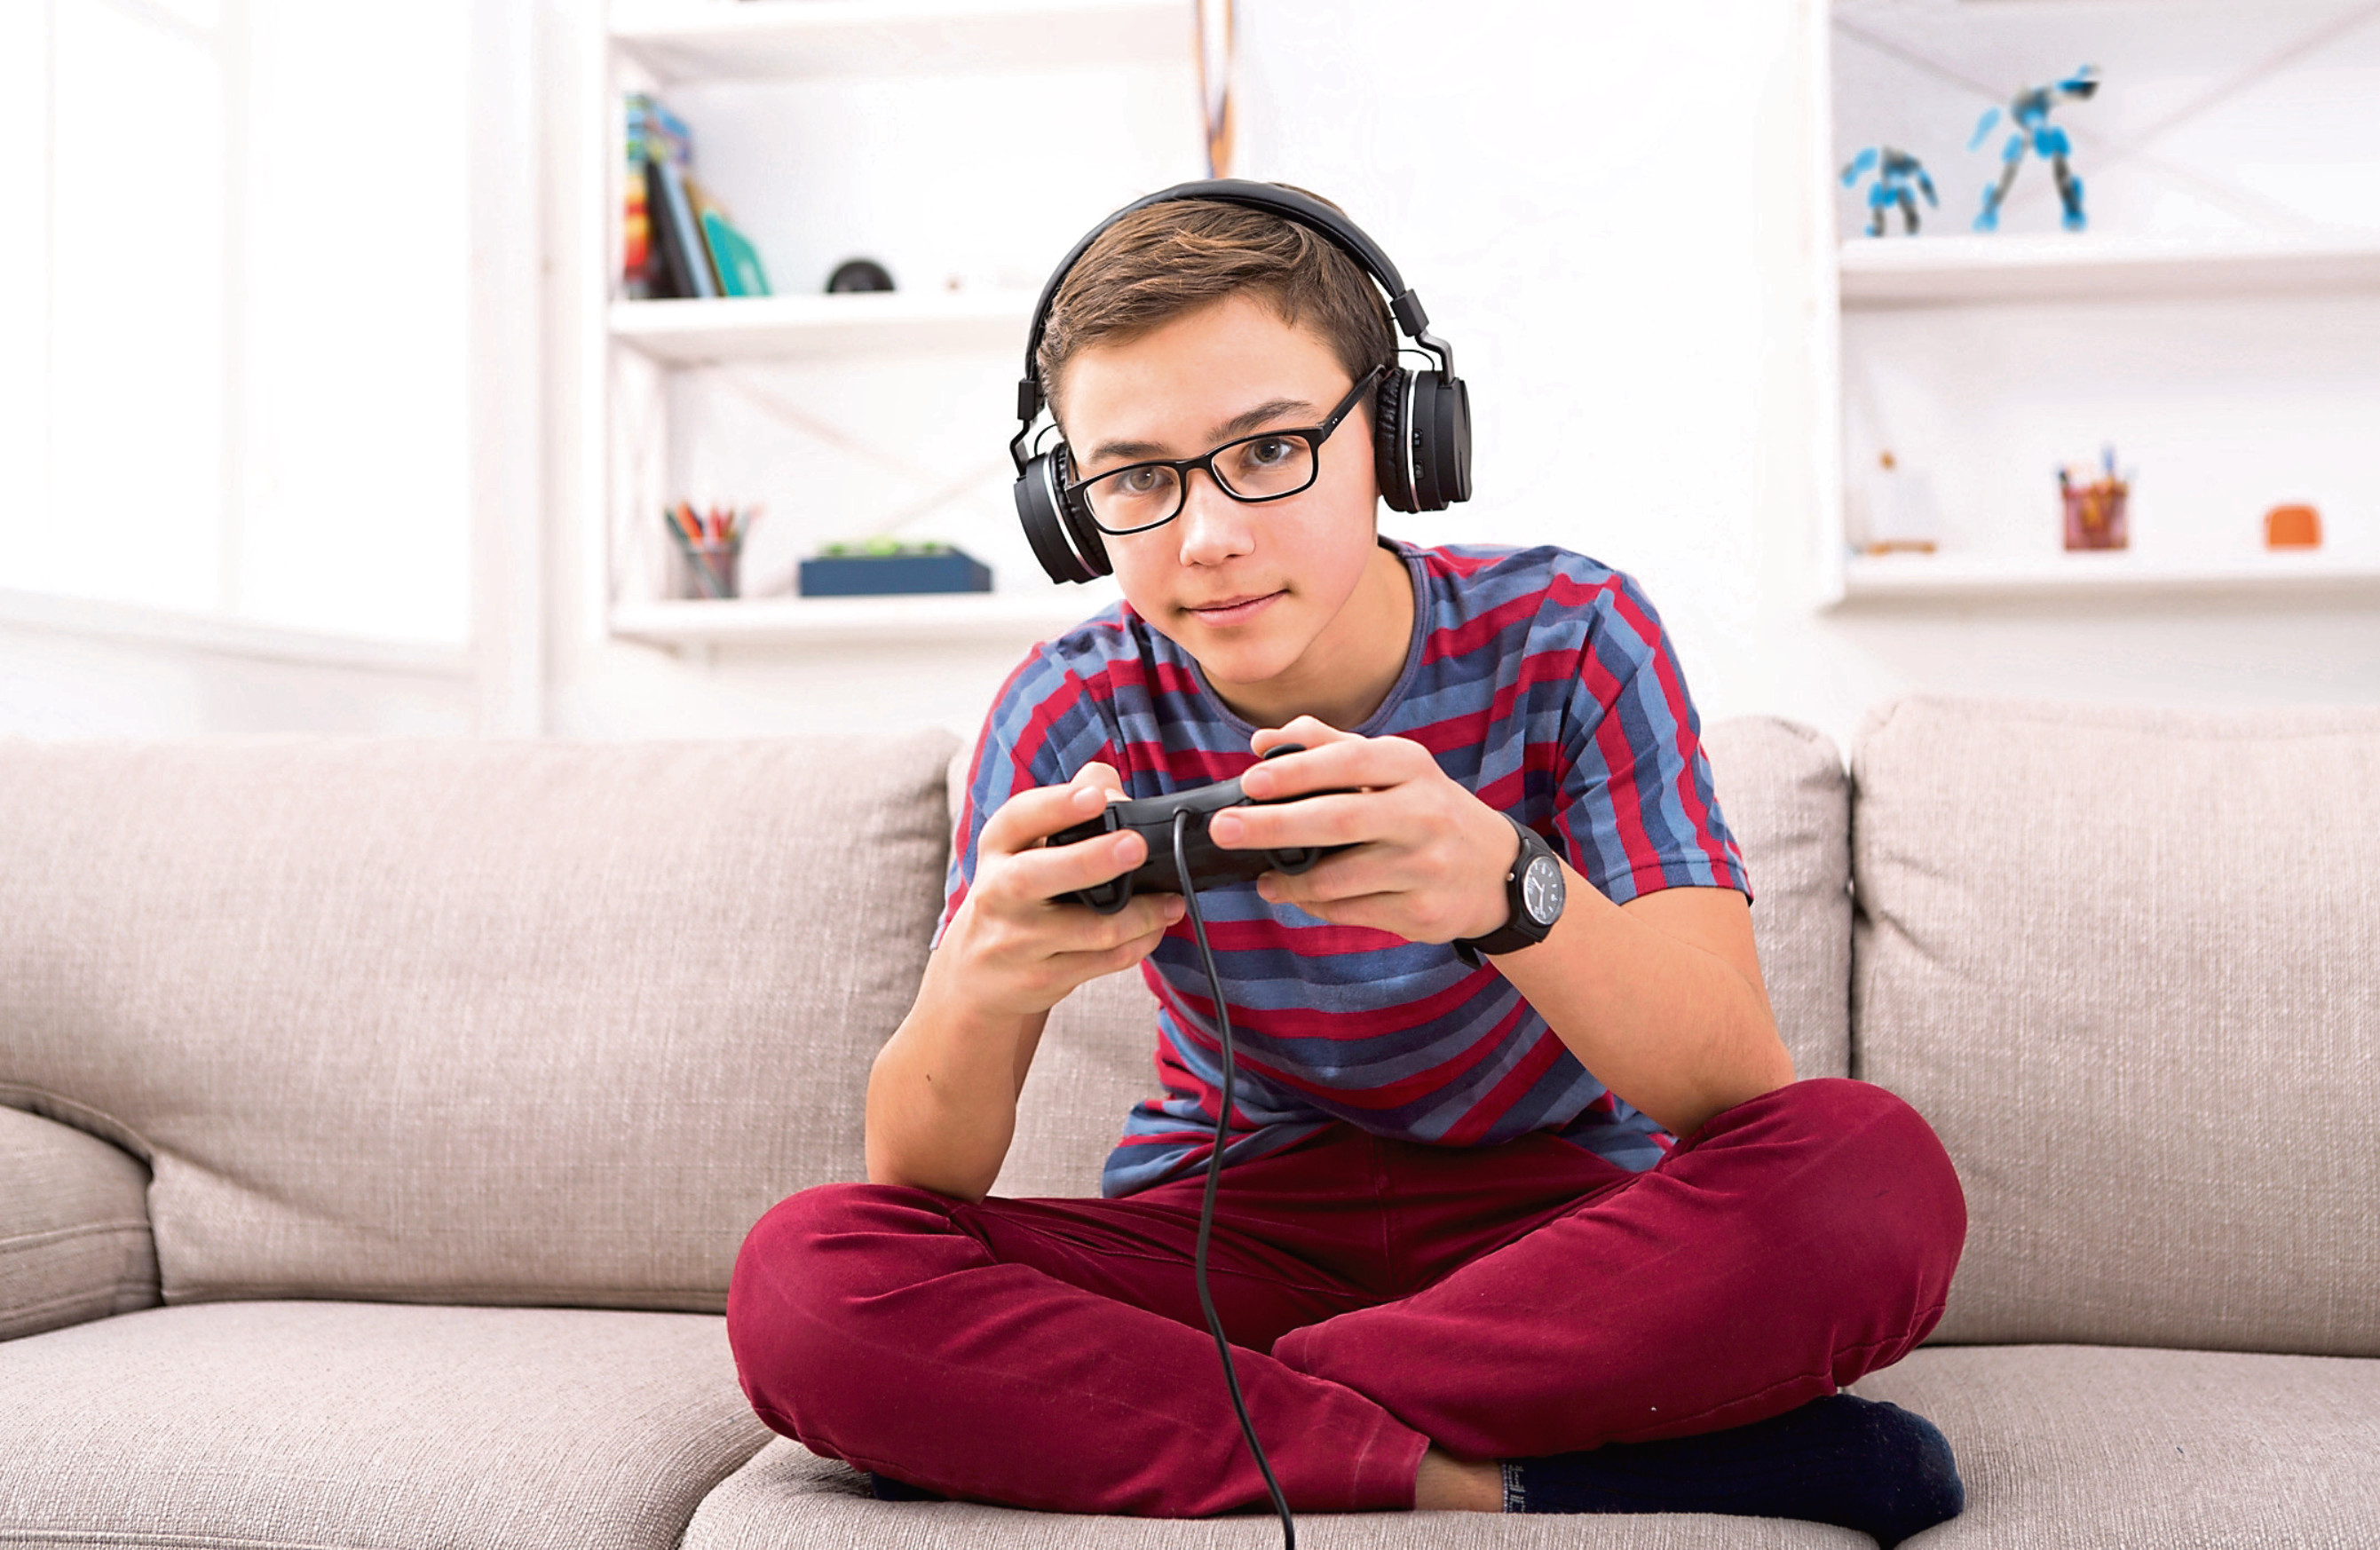 Games such as Fortnite, Minecraft and Roblox connect hundreds of strangers and open up conversations between them.